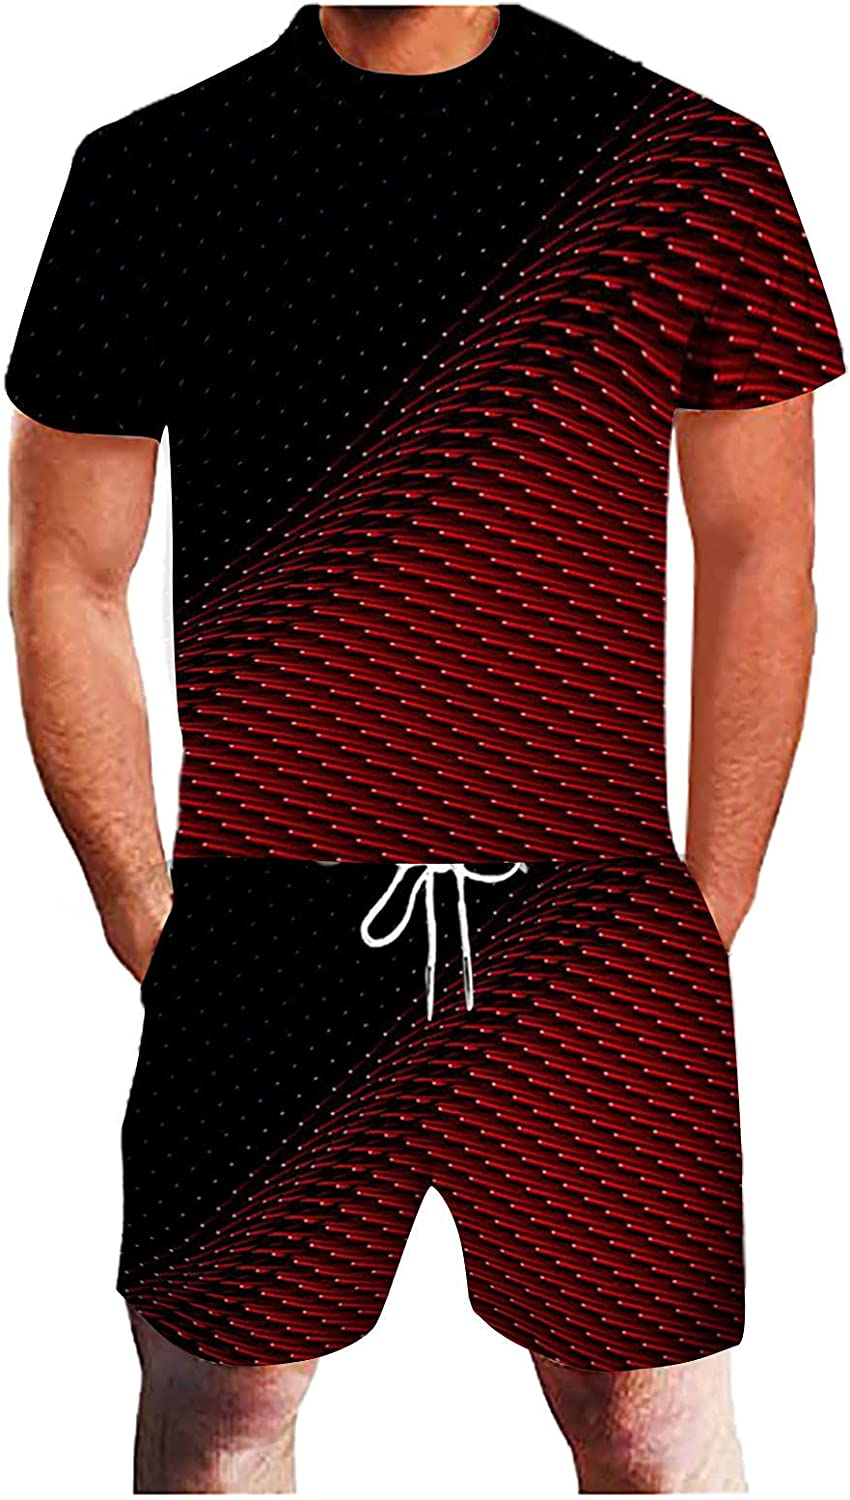 Men Tracksuit 2 Piece Outfit Casual Crew Neck Muscle Short Sleeve Tee Shirts and Classic Fit Sport Shorts Set